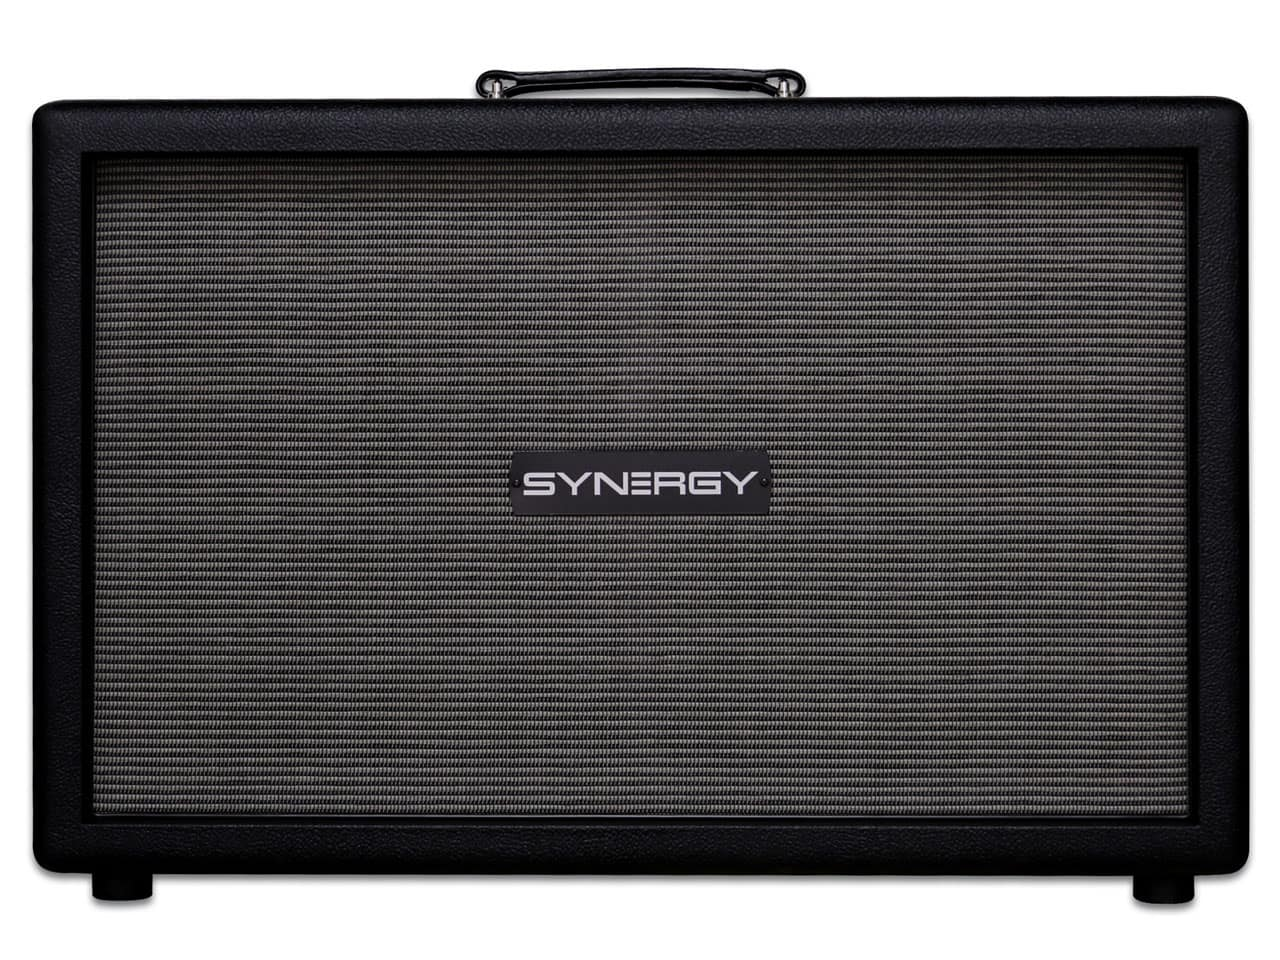 SYNERGY AMPS(シナジーアンプ) 2×12 Cabinet (スピーカーキャビネット)